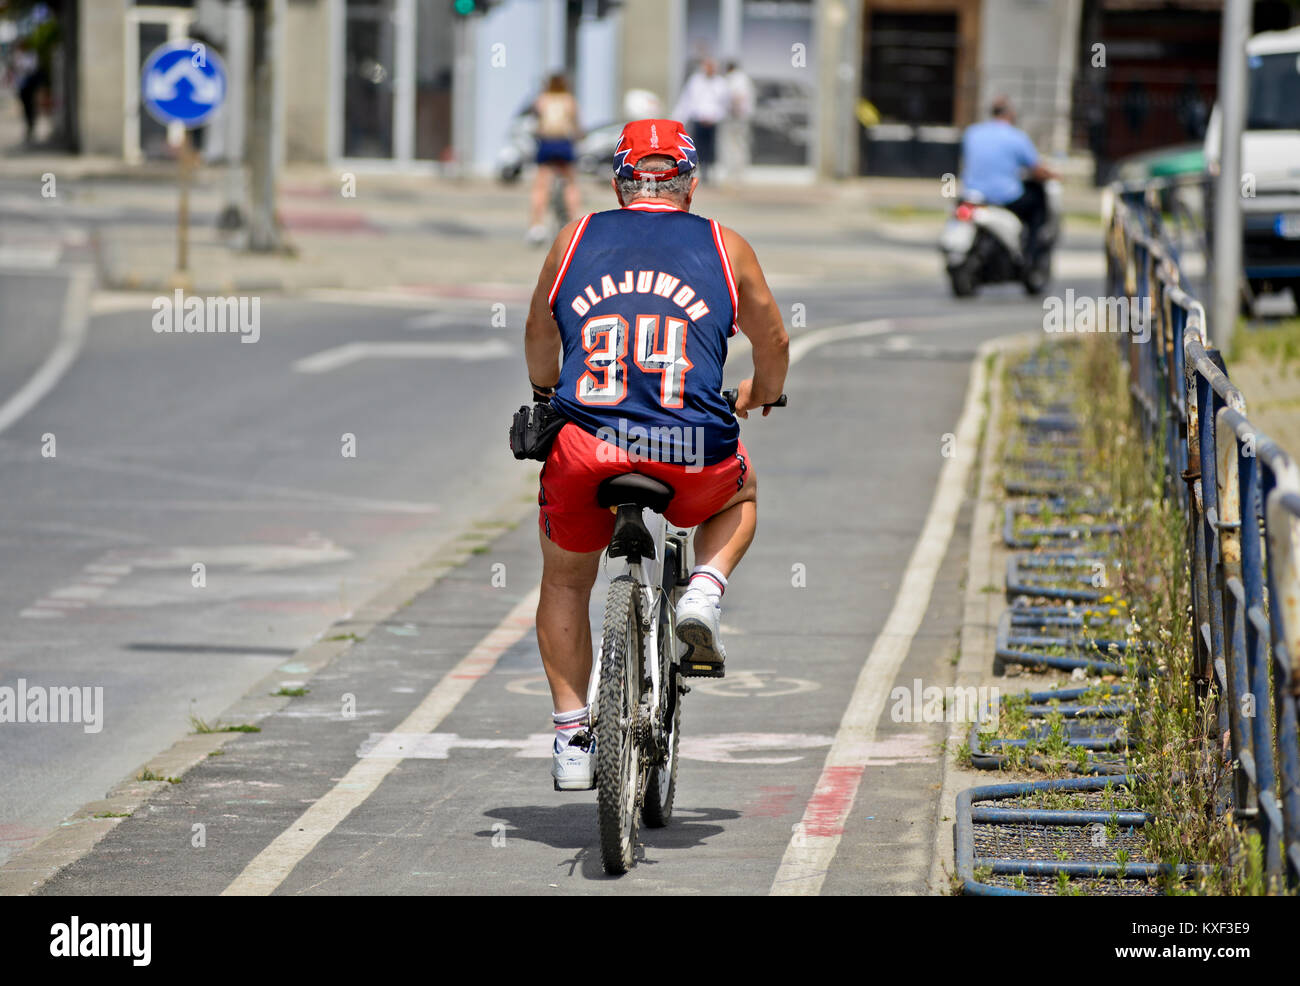 A man riding a bike wearing a basketball jersey (Hakeem Olajuwon, Houston Rockets). Skopje, Macedonia - Stock Image